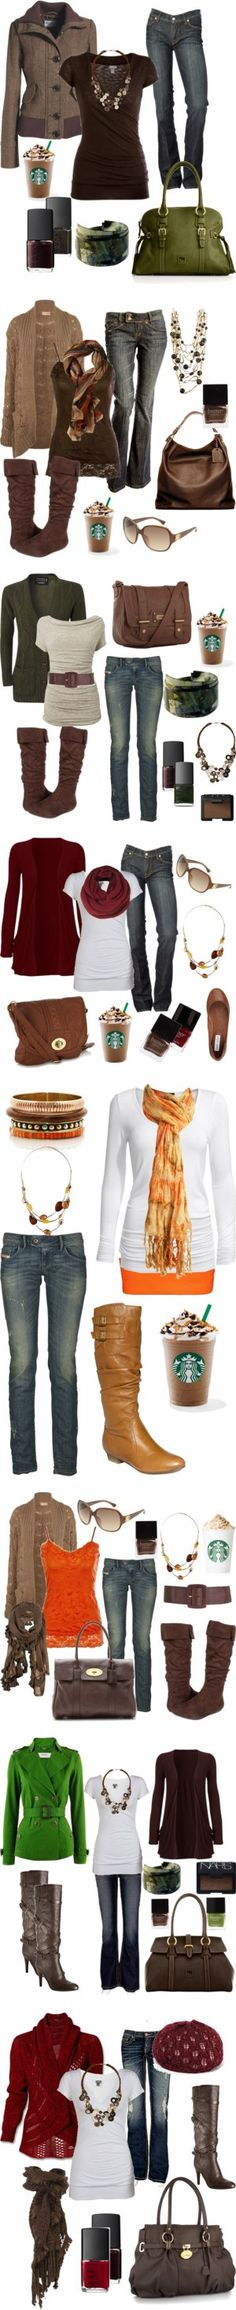 Great fall fashion!